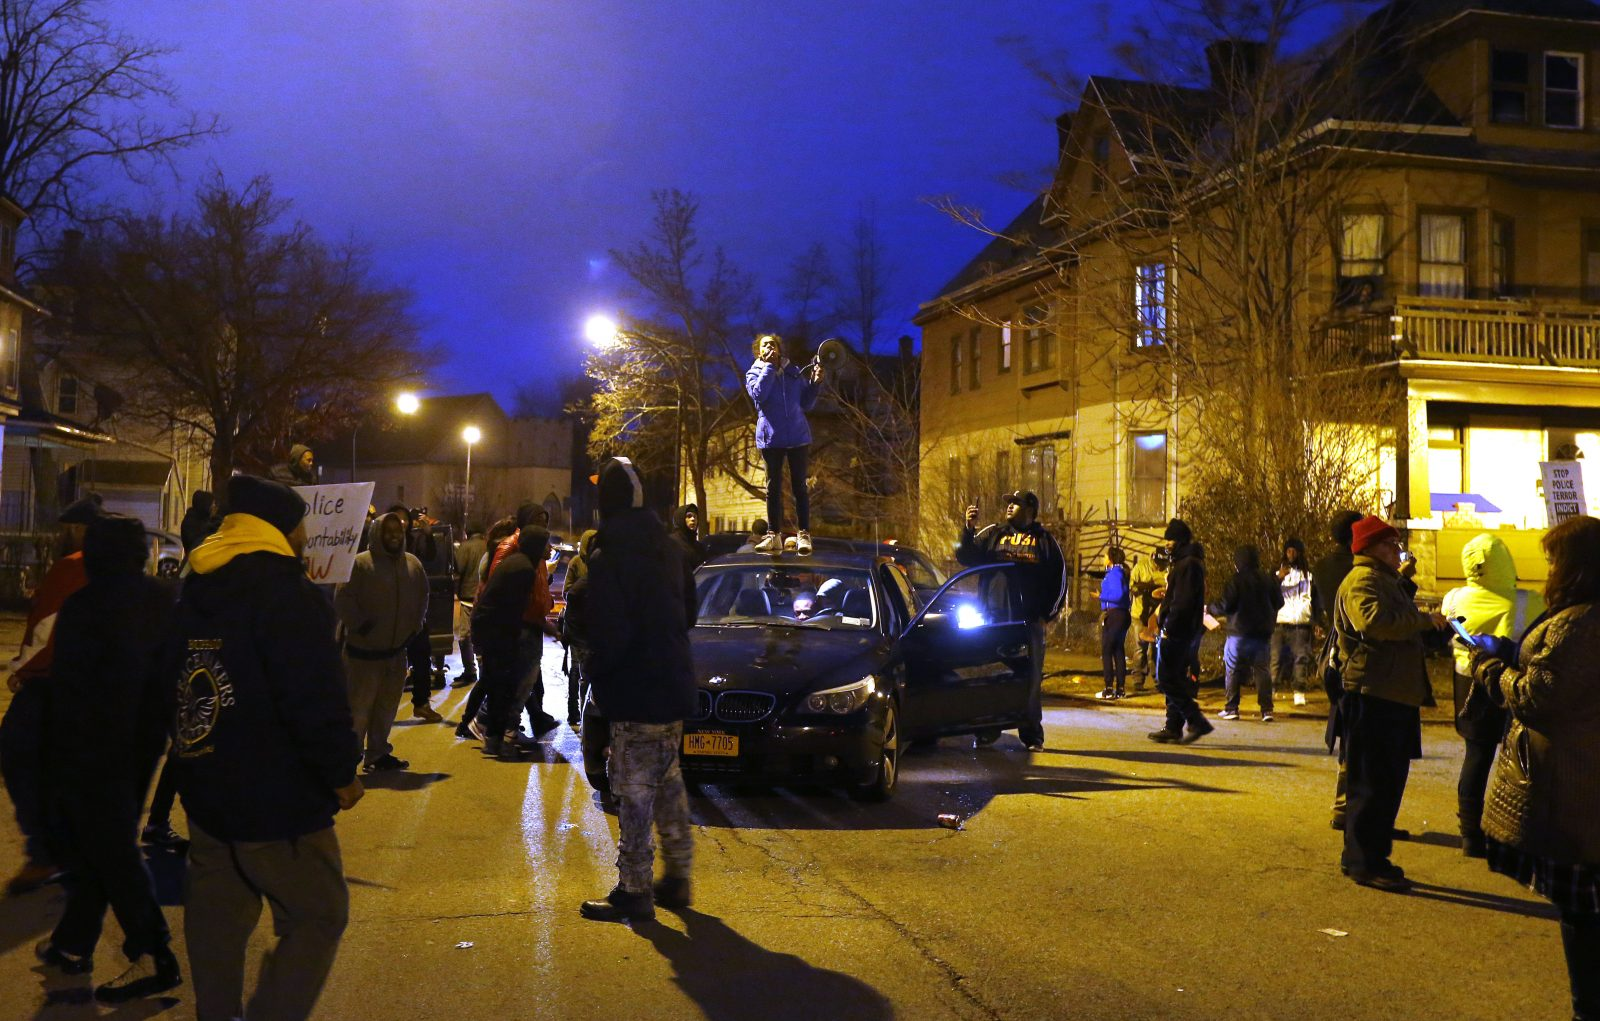 People gather at the corner of Hoyt and Arnold streets on Wednesday, Feb. 8, 2017, to remember Wardel Davis, who stopped breathing and died Feb. 7 on Hoyt Street during a struggle with Buffalo police. (Mark Mulville/Buffalo News)